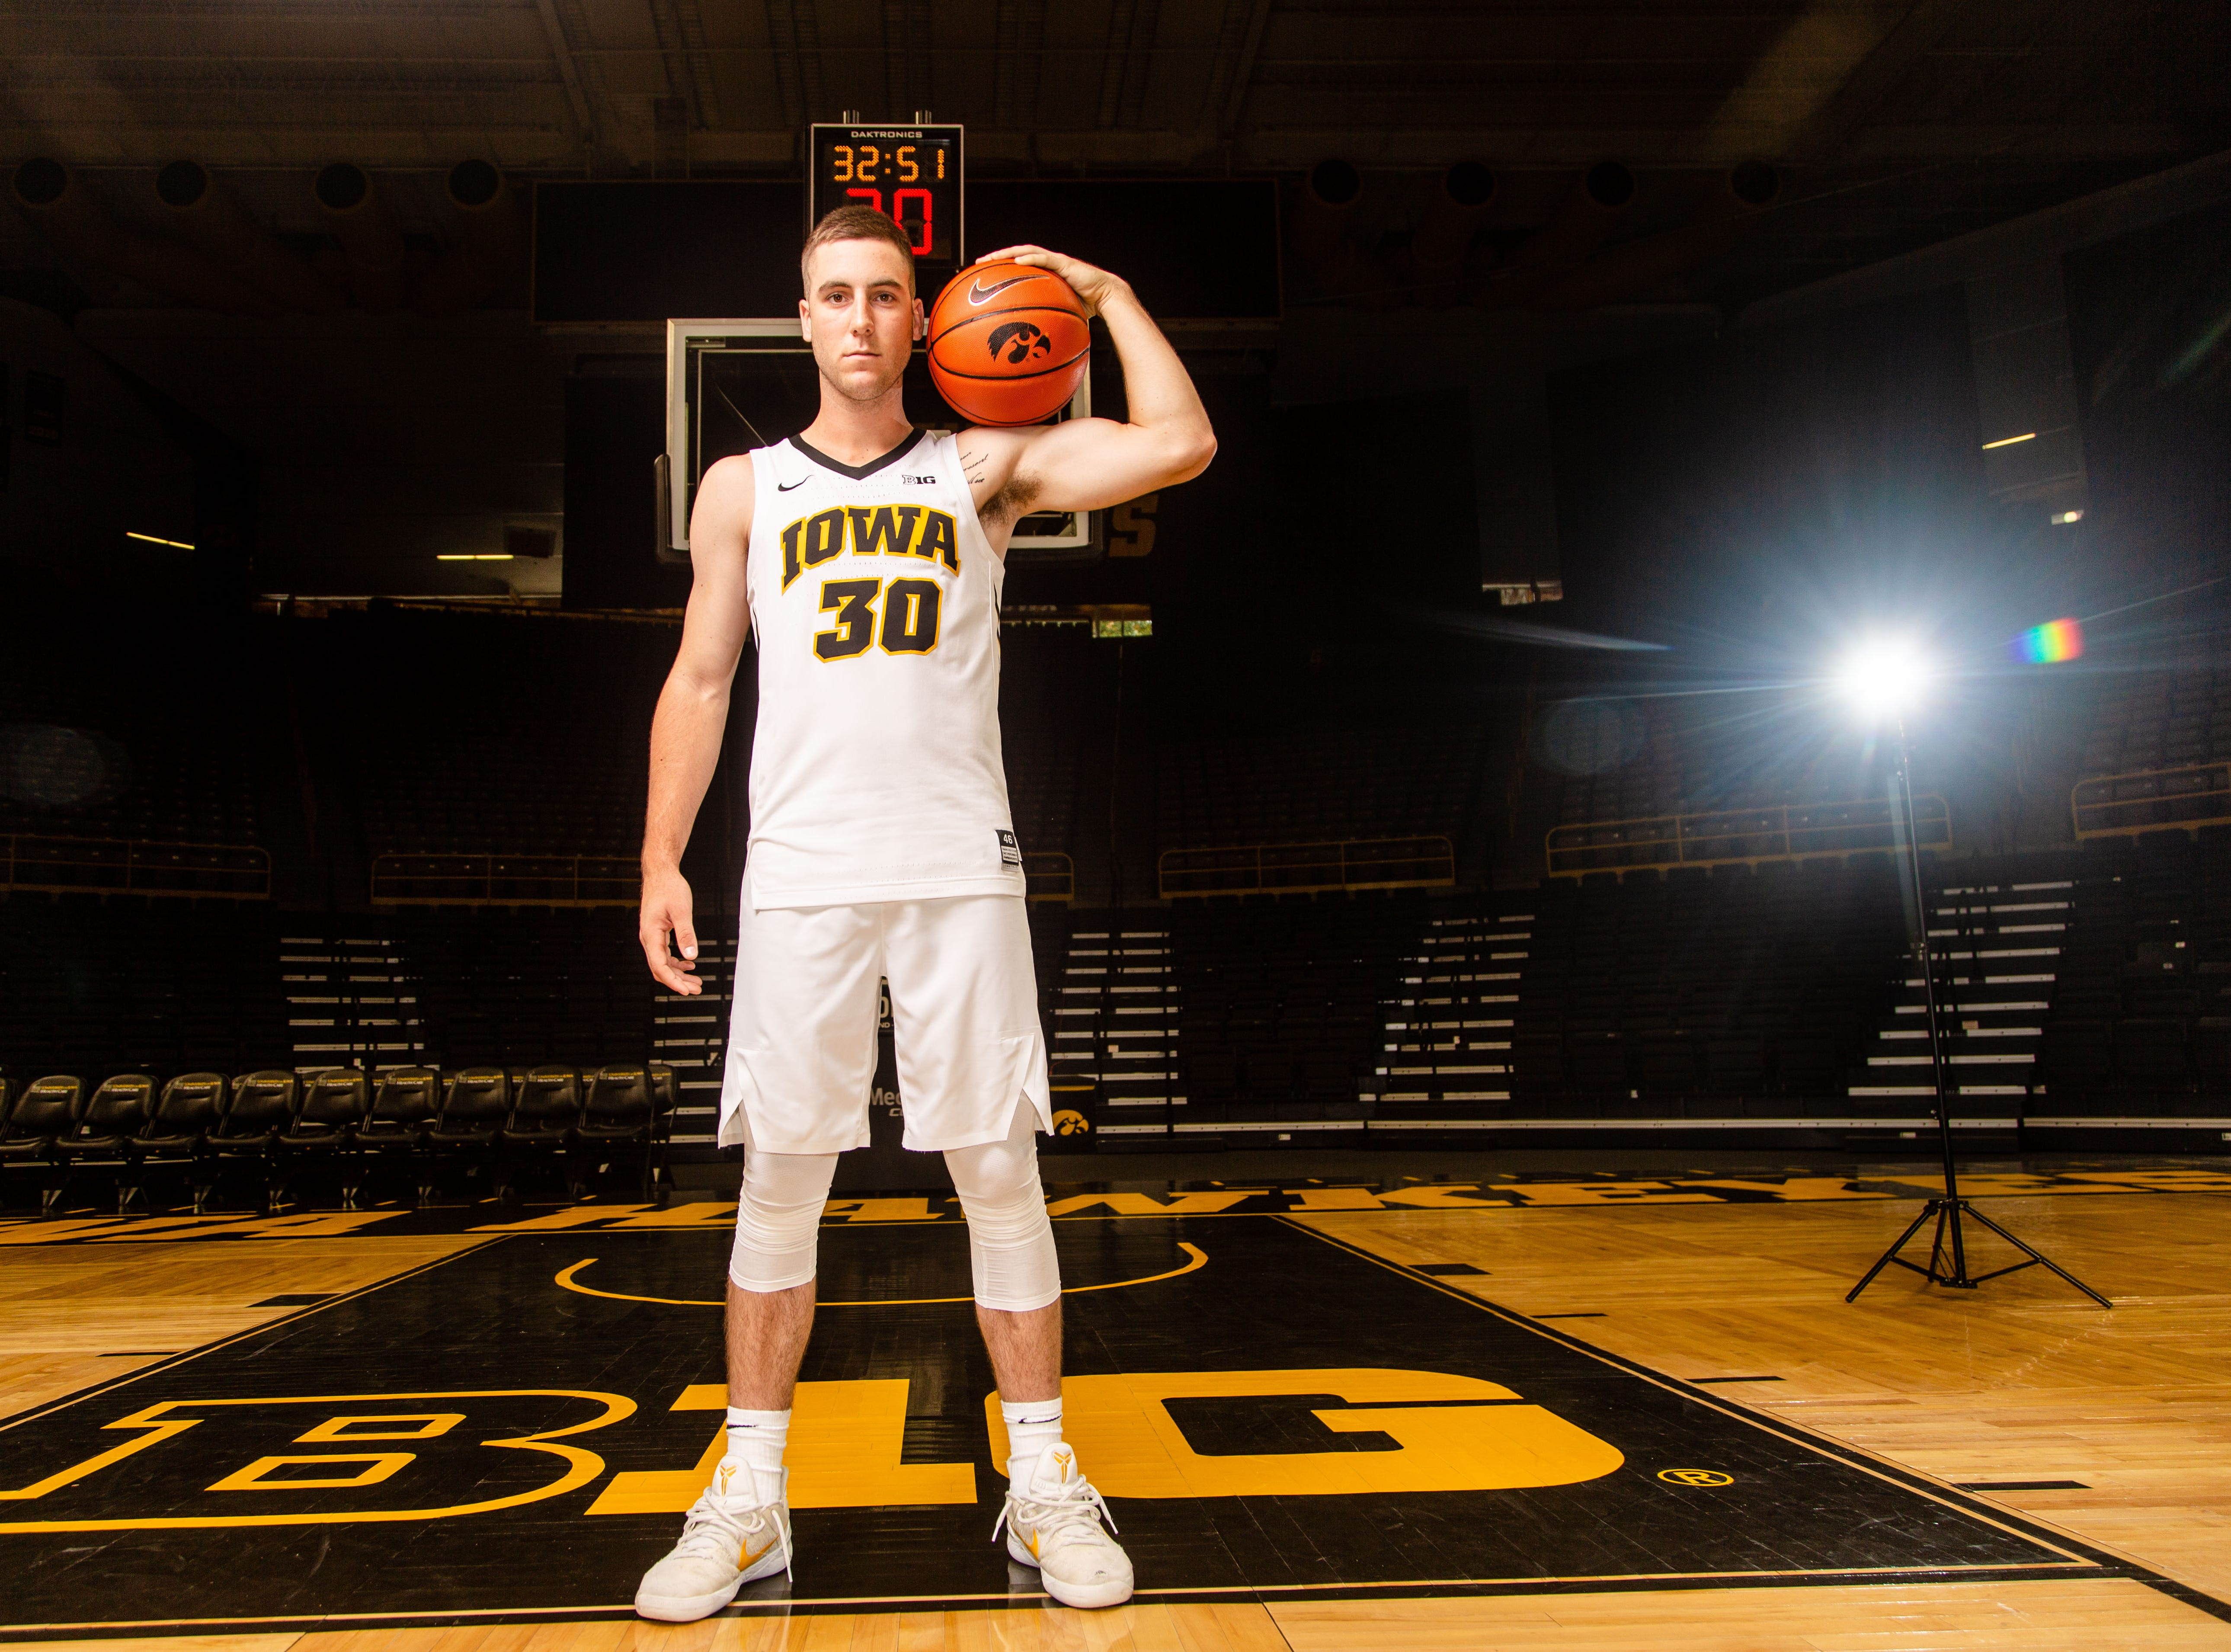 Iowa guard Connor McCaffery poses for a photo during Hawkeye media day at Carver Hawkeye ArenaMonday, Oct. 8, 2018.